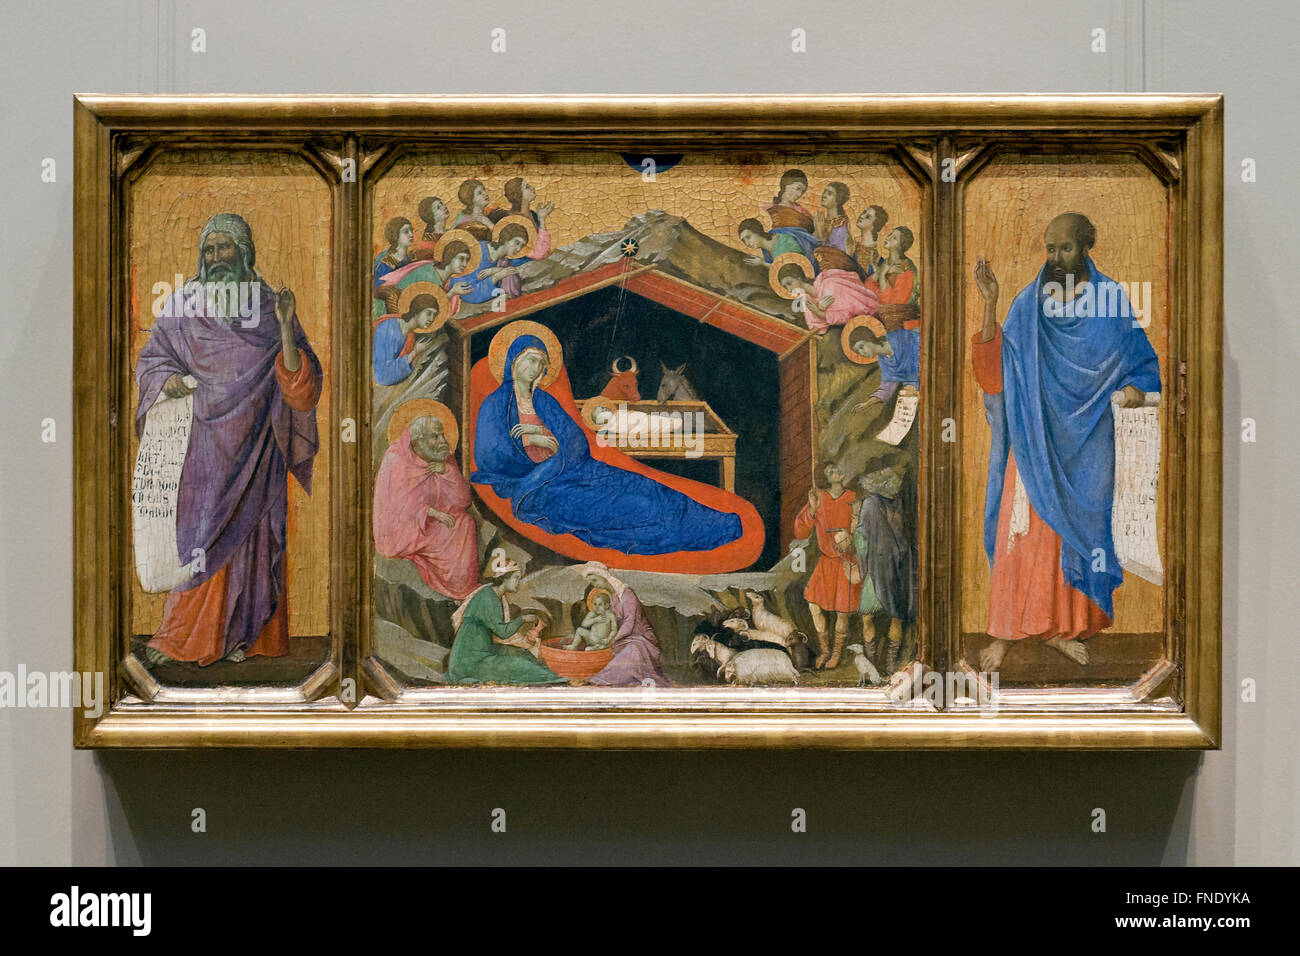 The Nativity with the Prophets Isaiah and Ezekiel by Duccio di Buoninsegna, circa 1308 - Stock Image